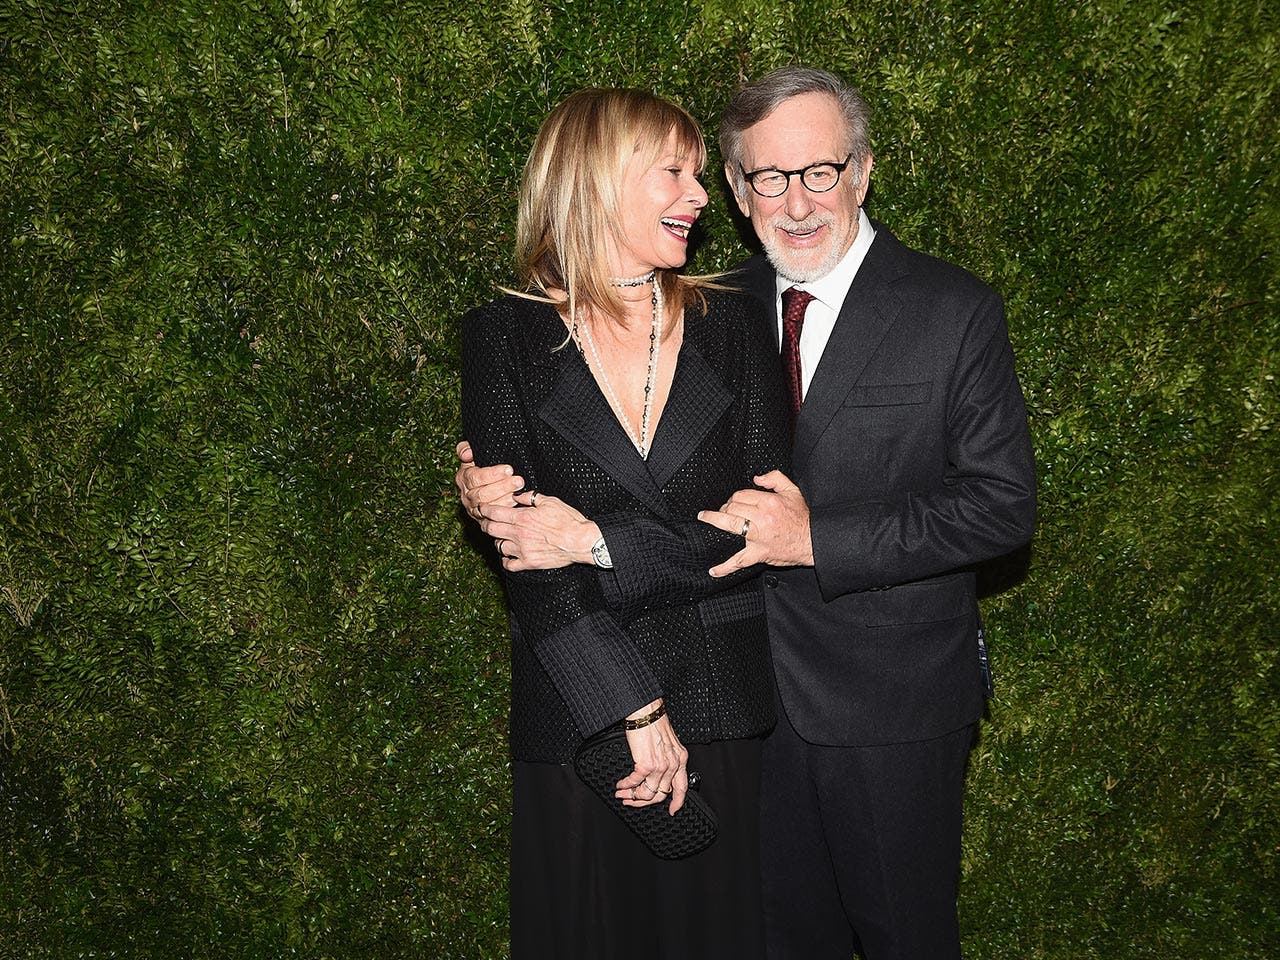 Steven Spielberg and Kate Capshaw | Nicholas Hunt/Getty Images